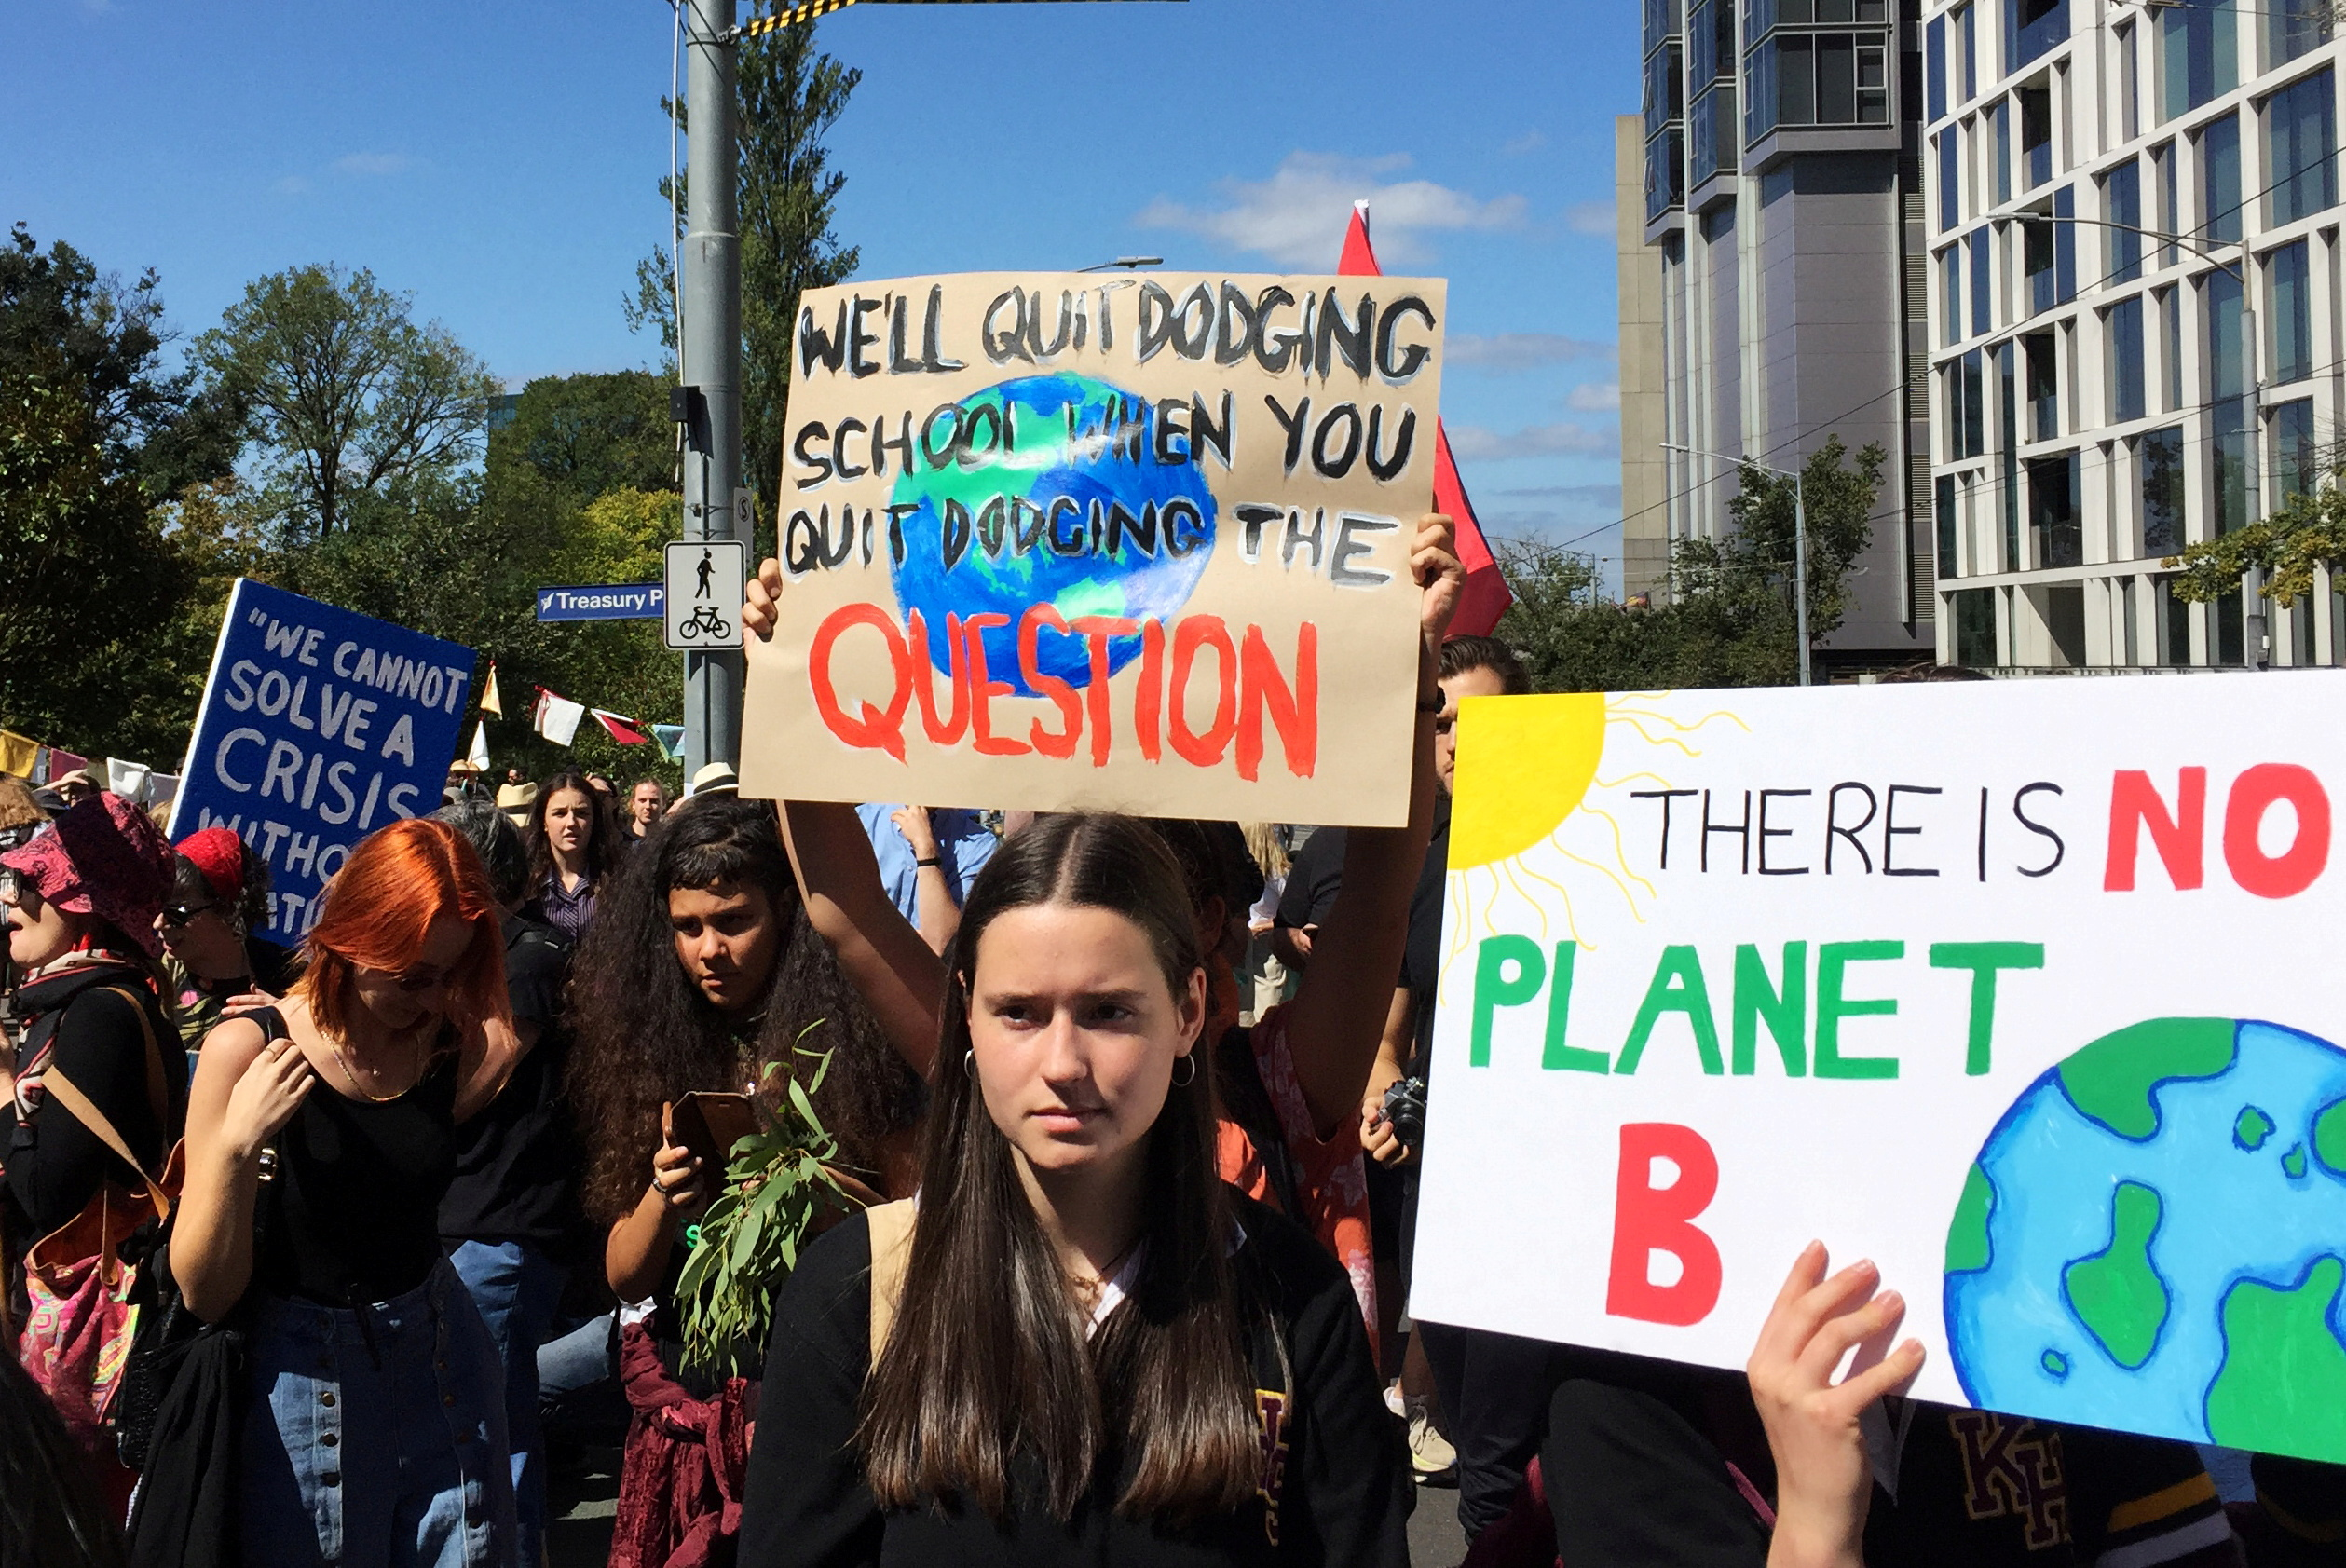 Protesters demanding action on climate change gather in Melbourne, Australia March 15, 2019.  REUTERS/Sonali Paul/File Photo